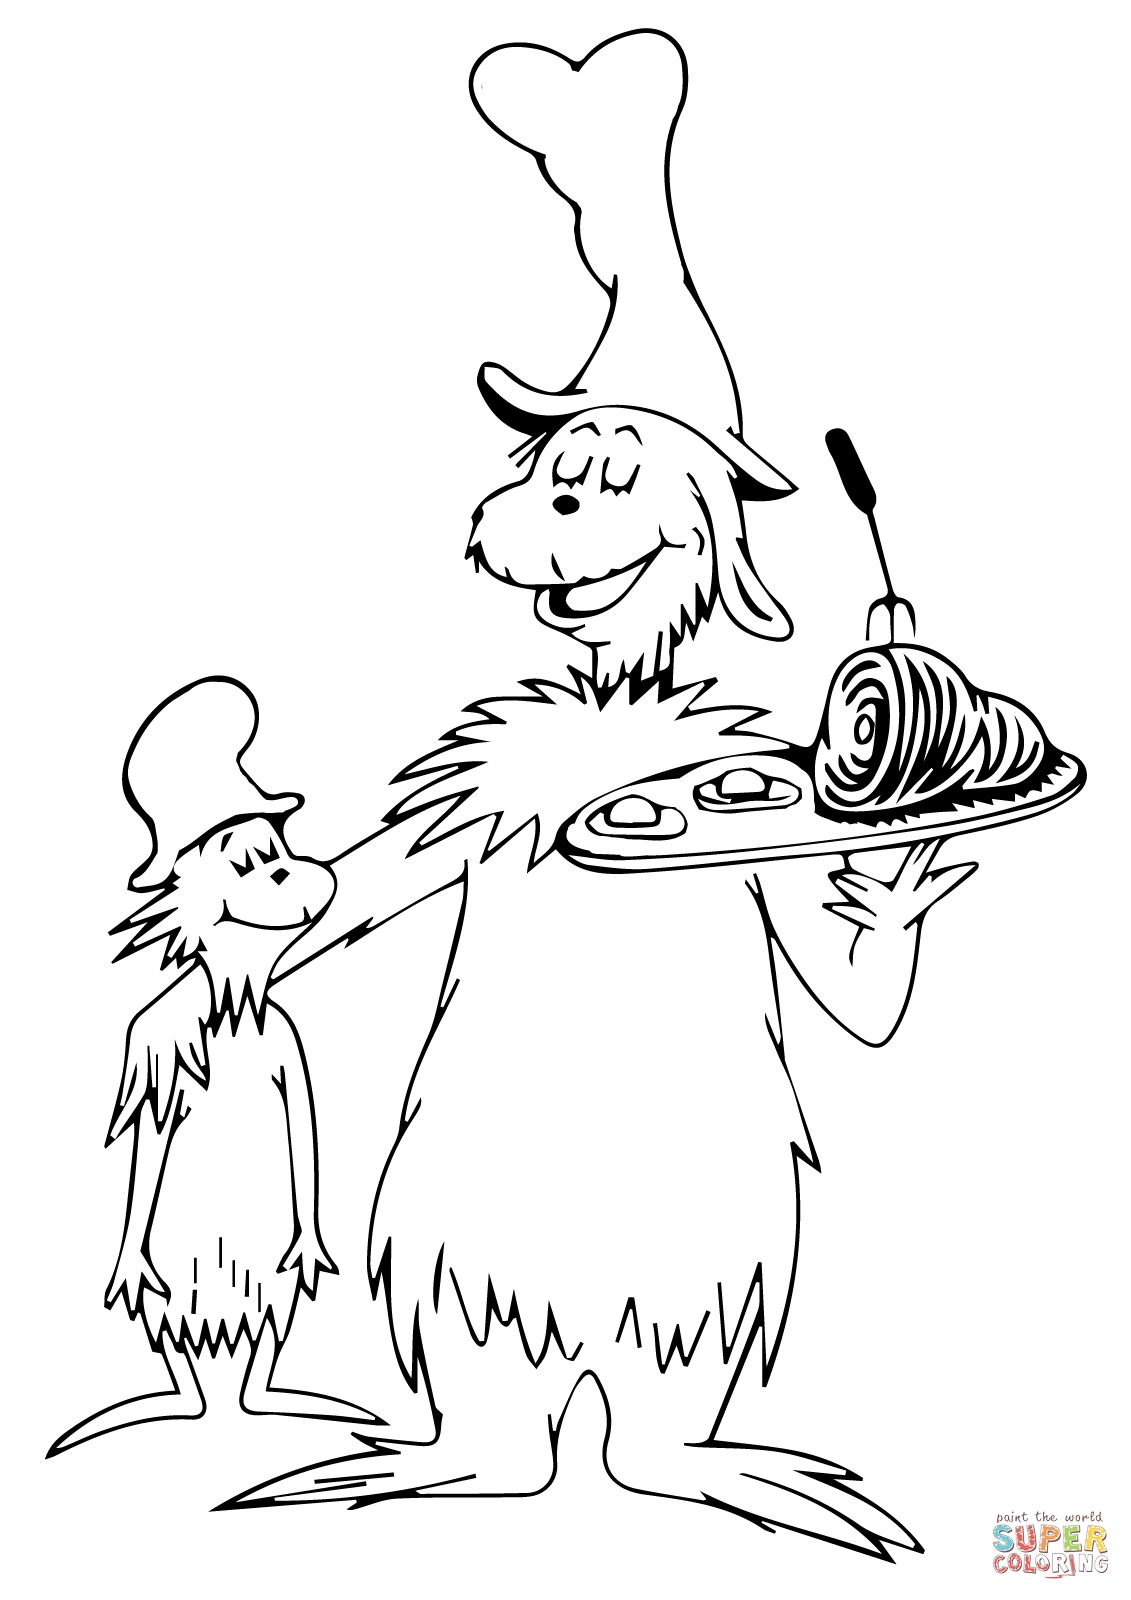 ham coloring pages - photo#15